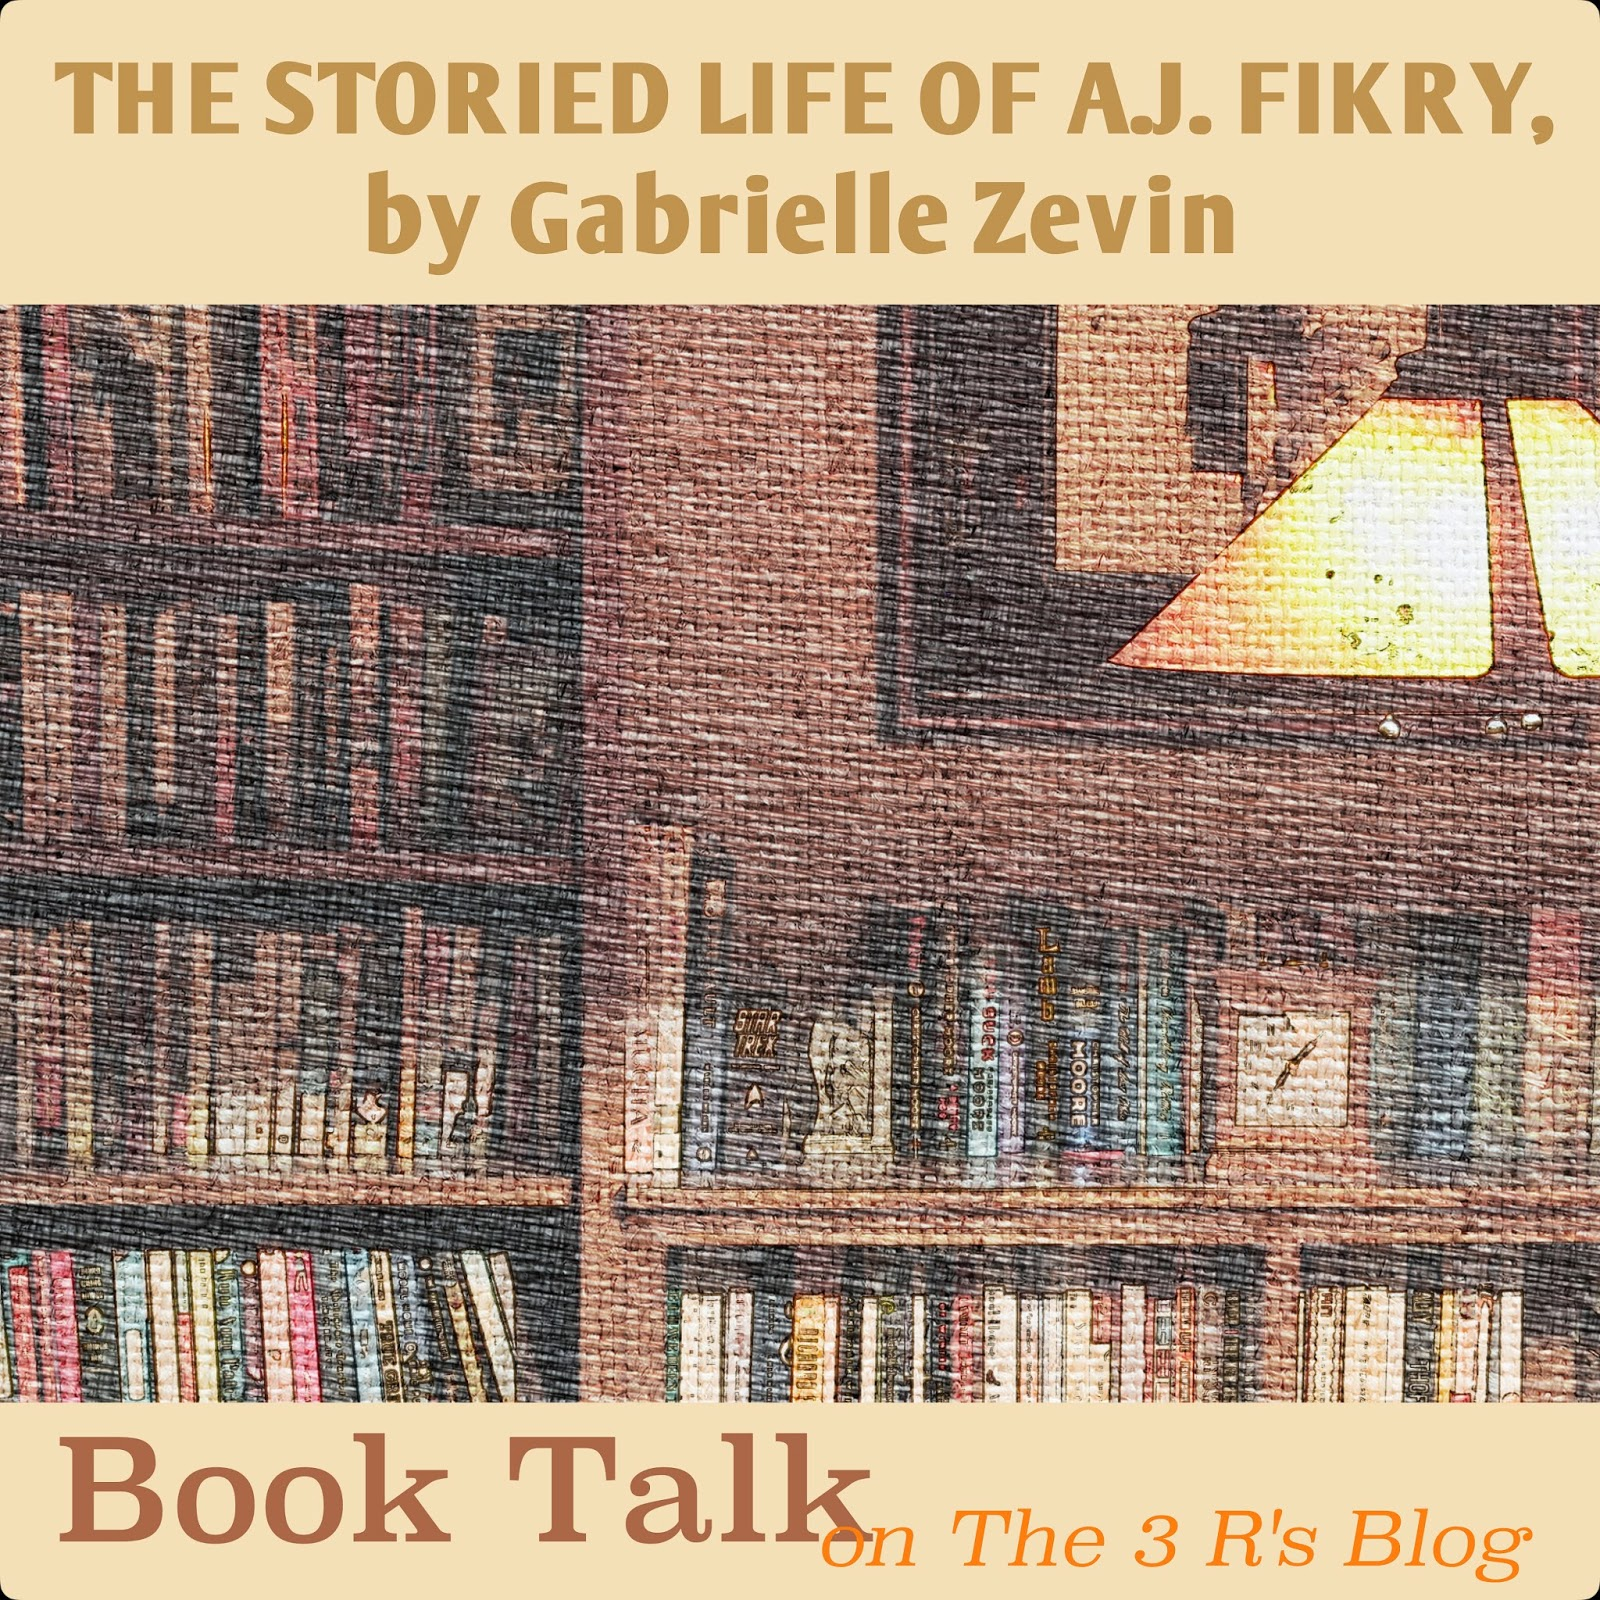 Book Talk THE STORIED LIFE OF A.J. FIKRY on The 3 Rs Blog